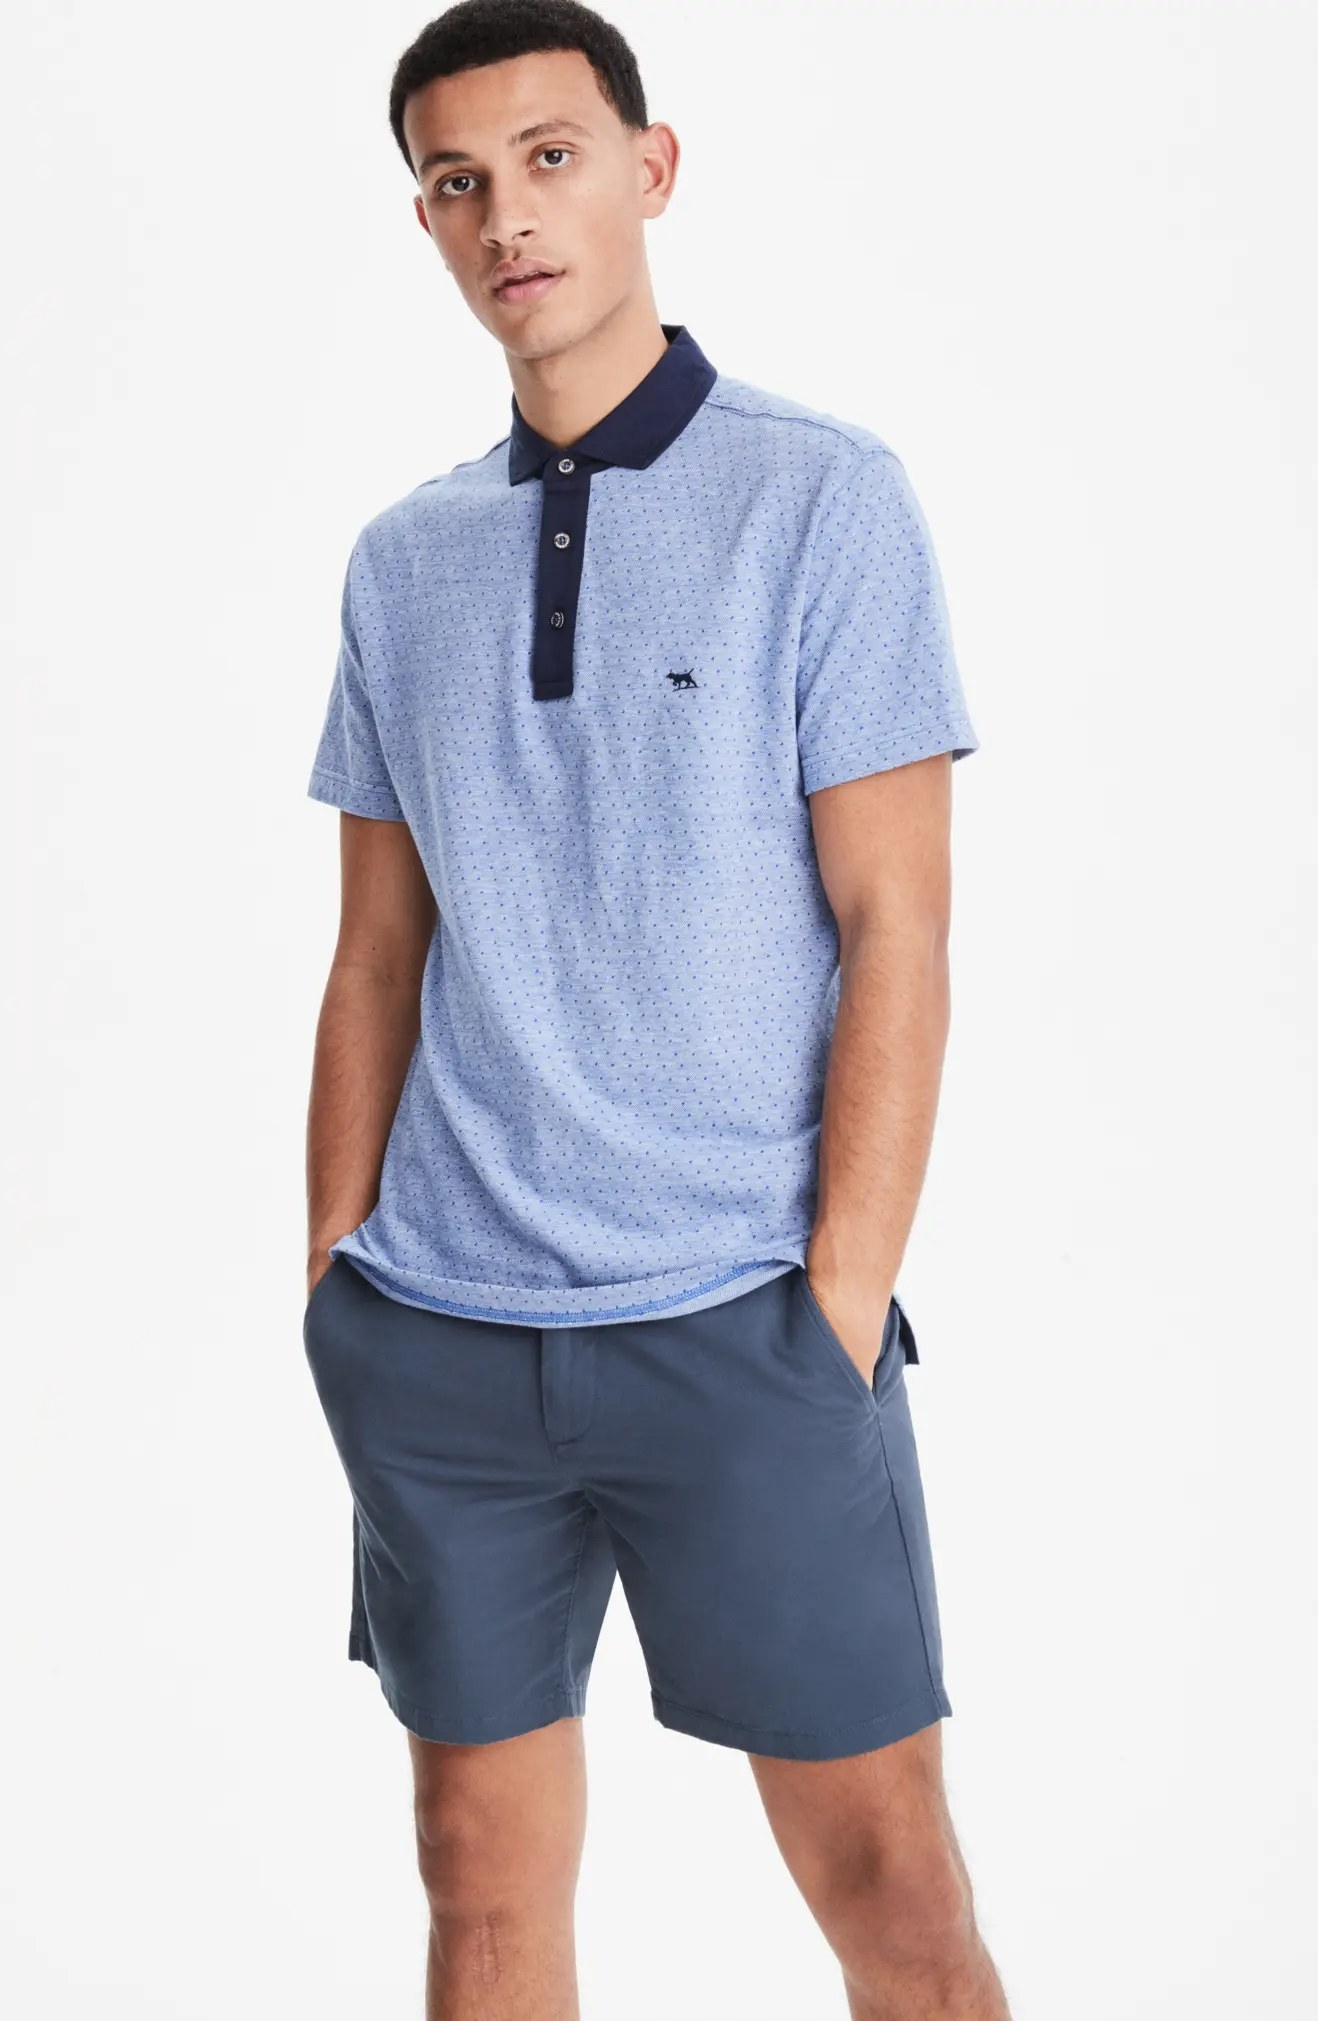 A model wearing the chinos in blue